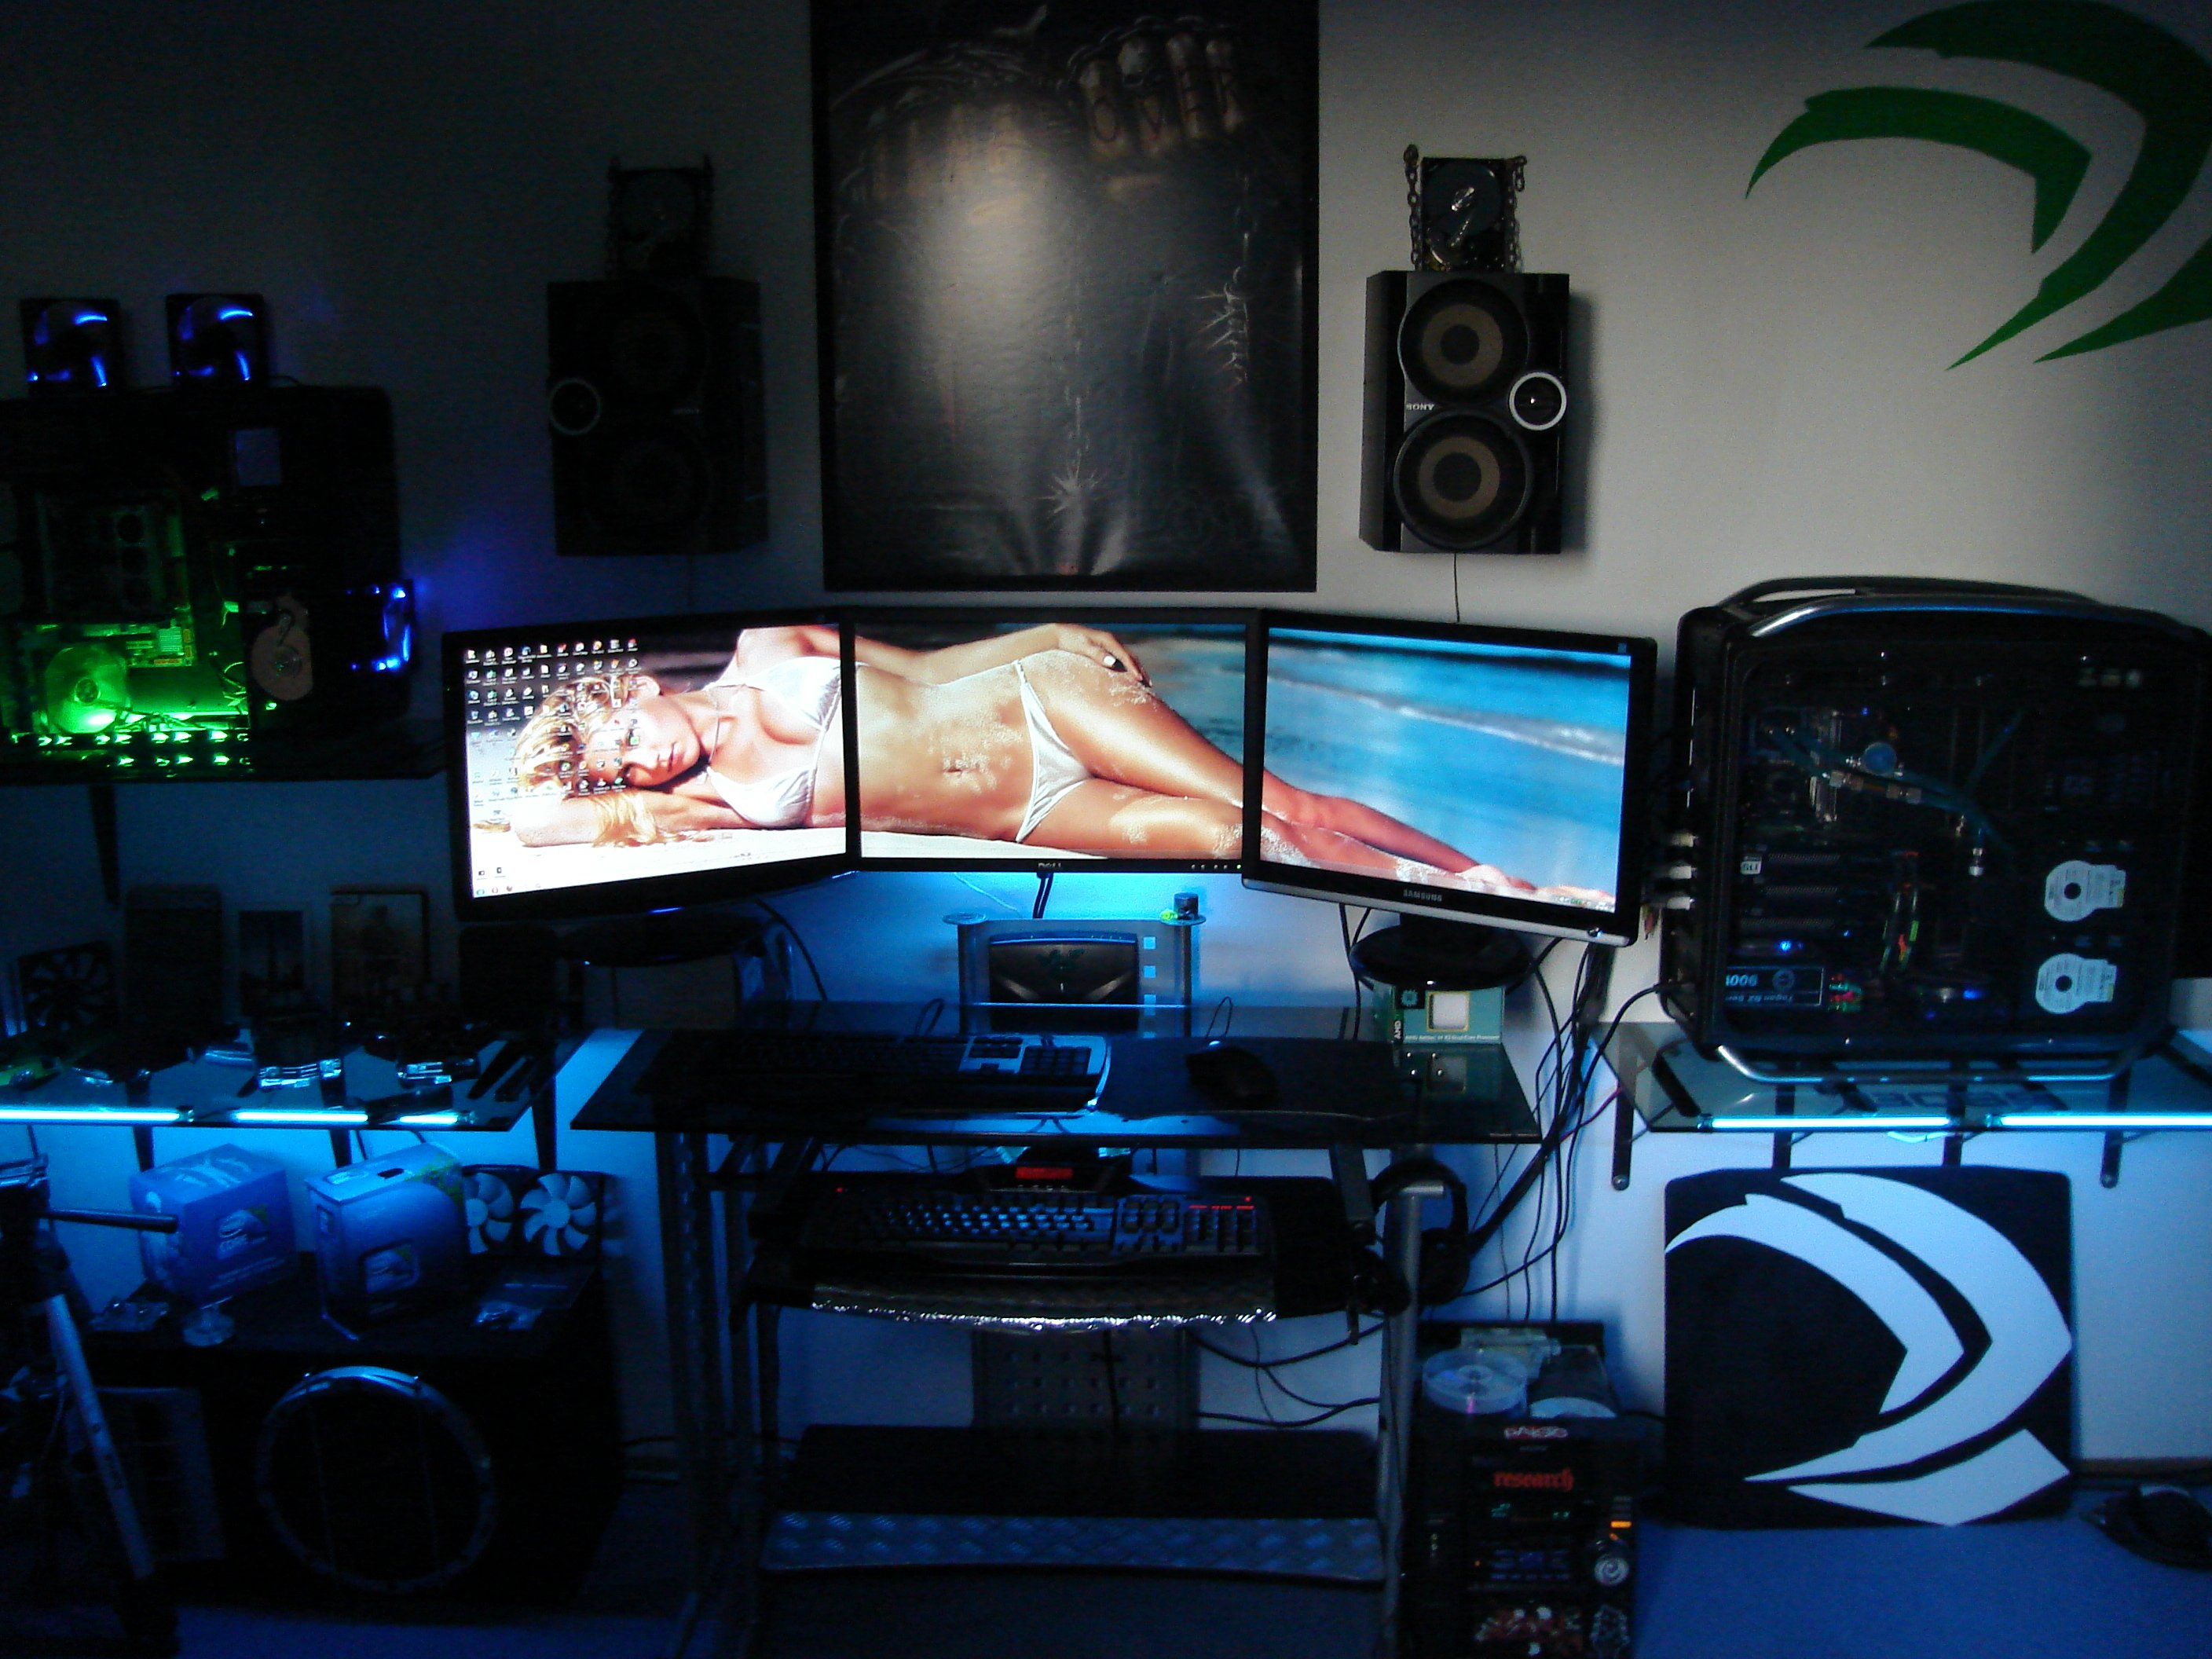 gaming room 3 way SLi 3 monitor setup by badh8me 2816x2112